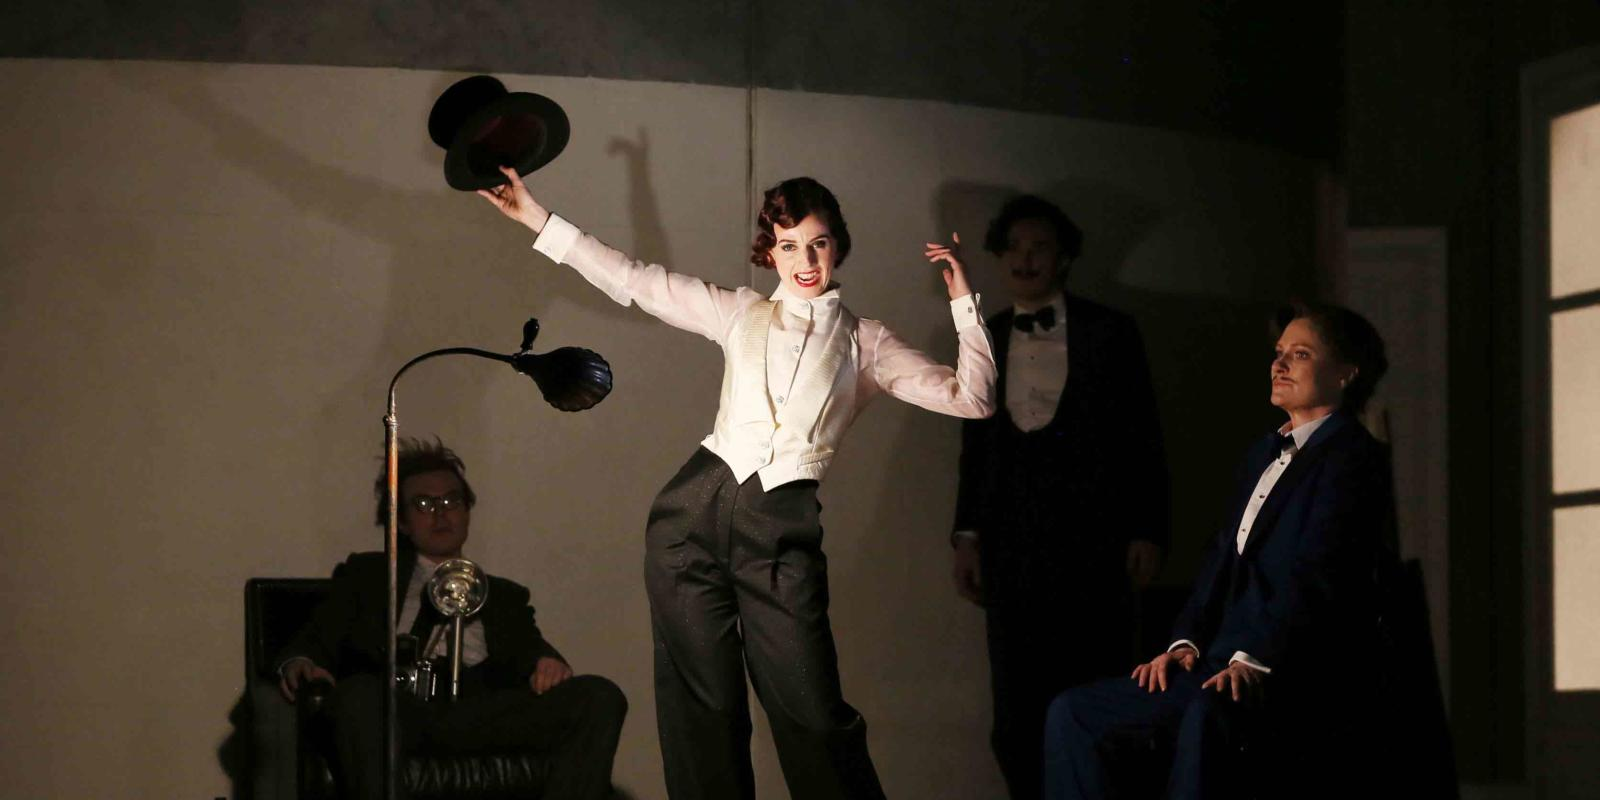 Sarah Tynan playing Partenope in ENO's 2017 production of Partenope